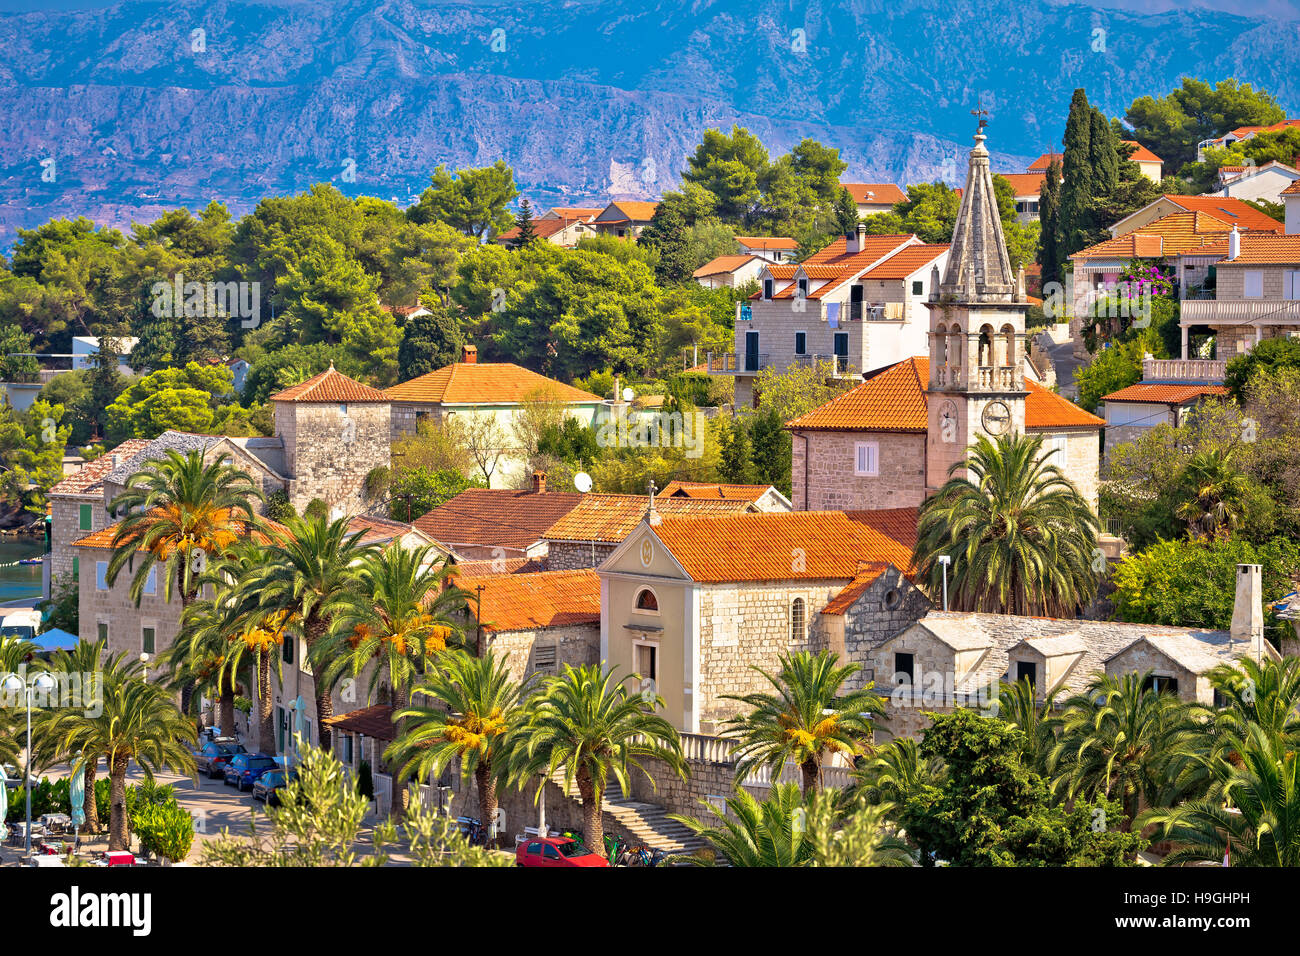 Splitska village stone landmarks in palm trees, island of Brac, Croatia - Stock Image